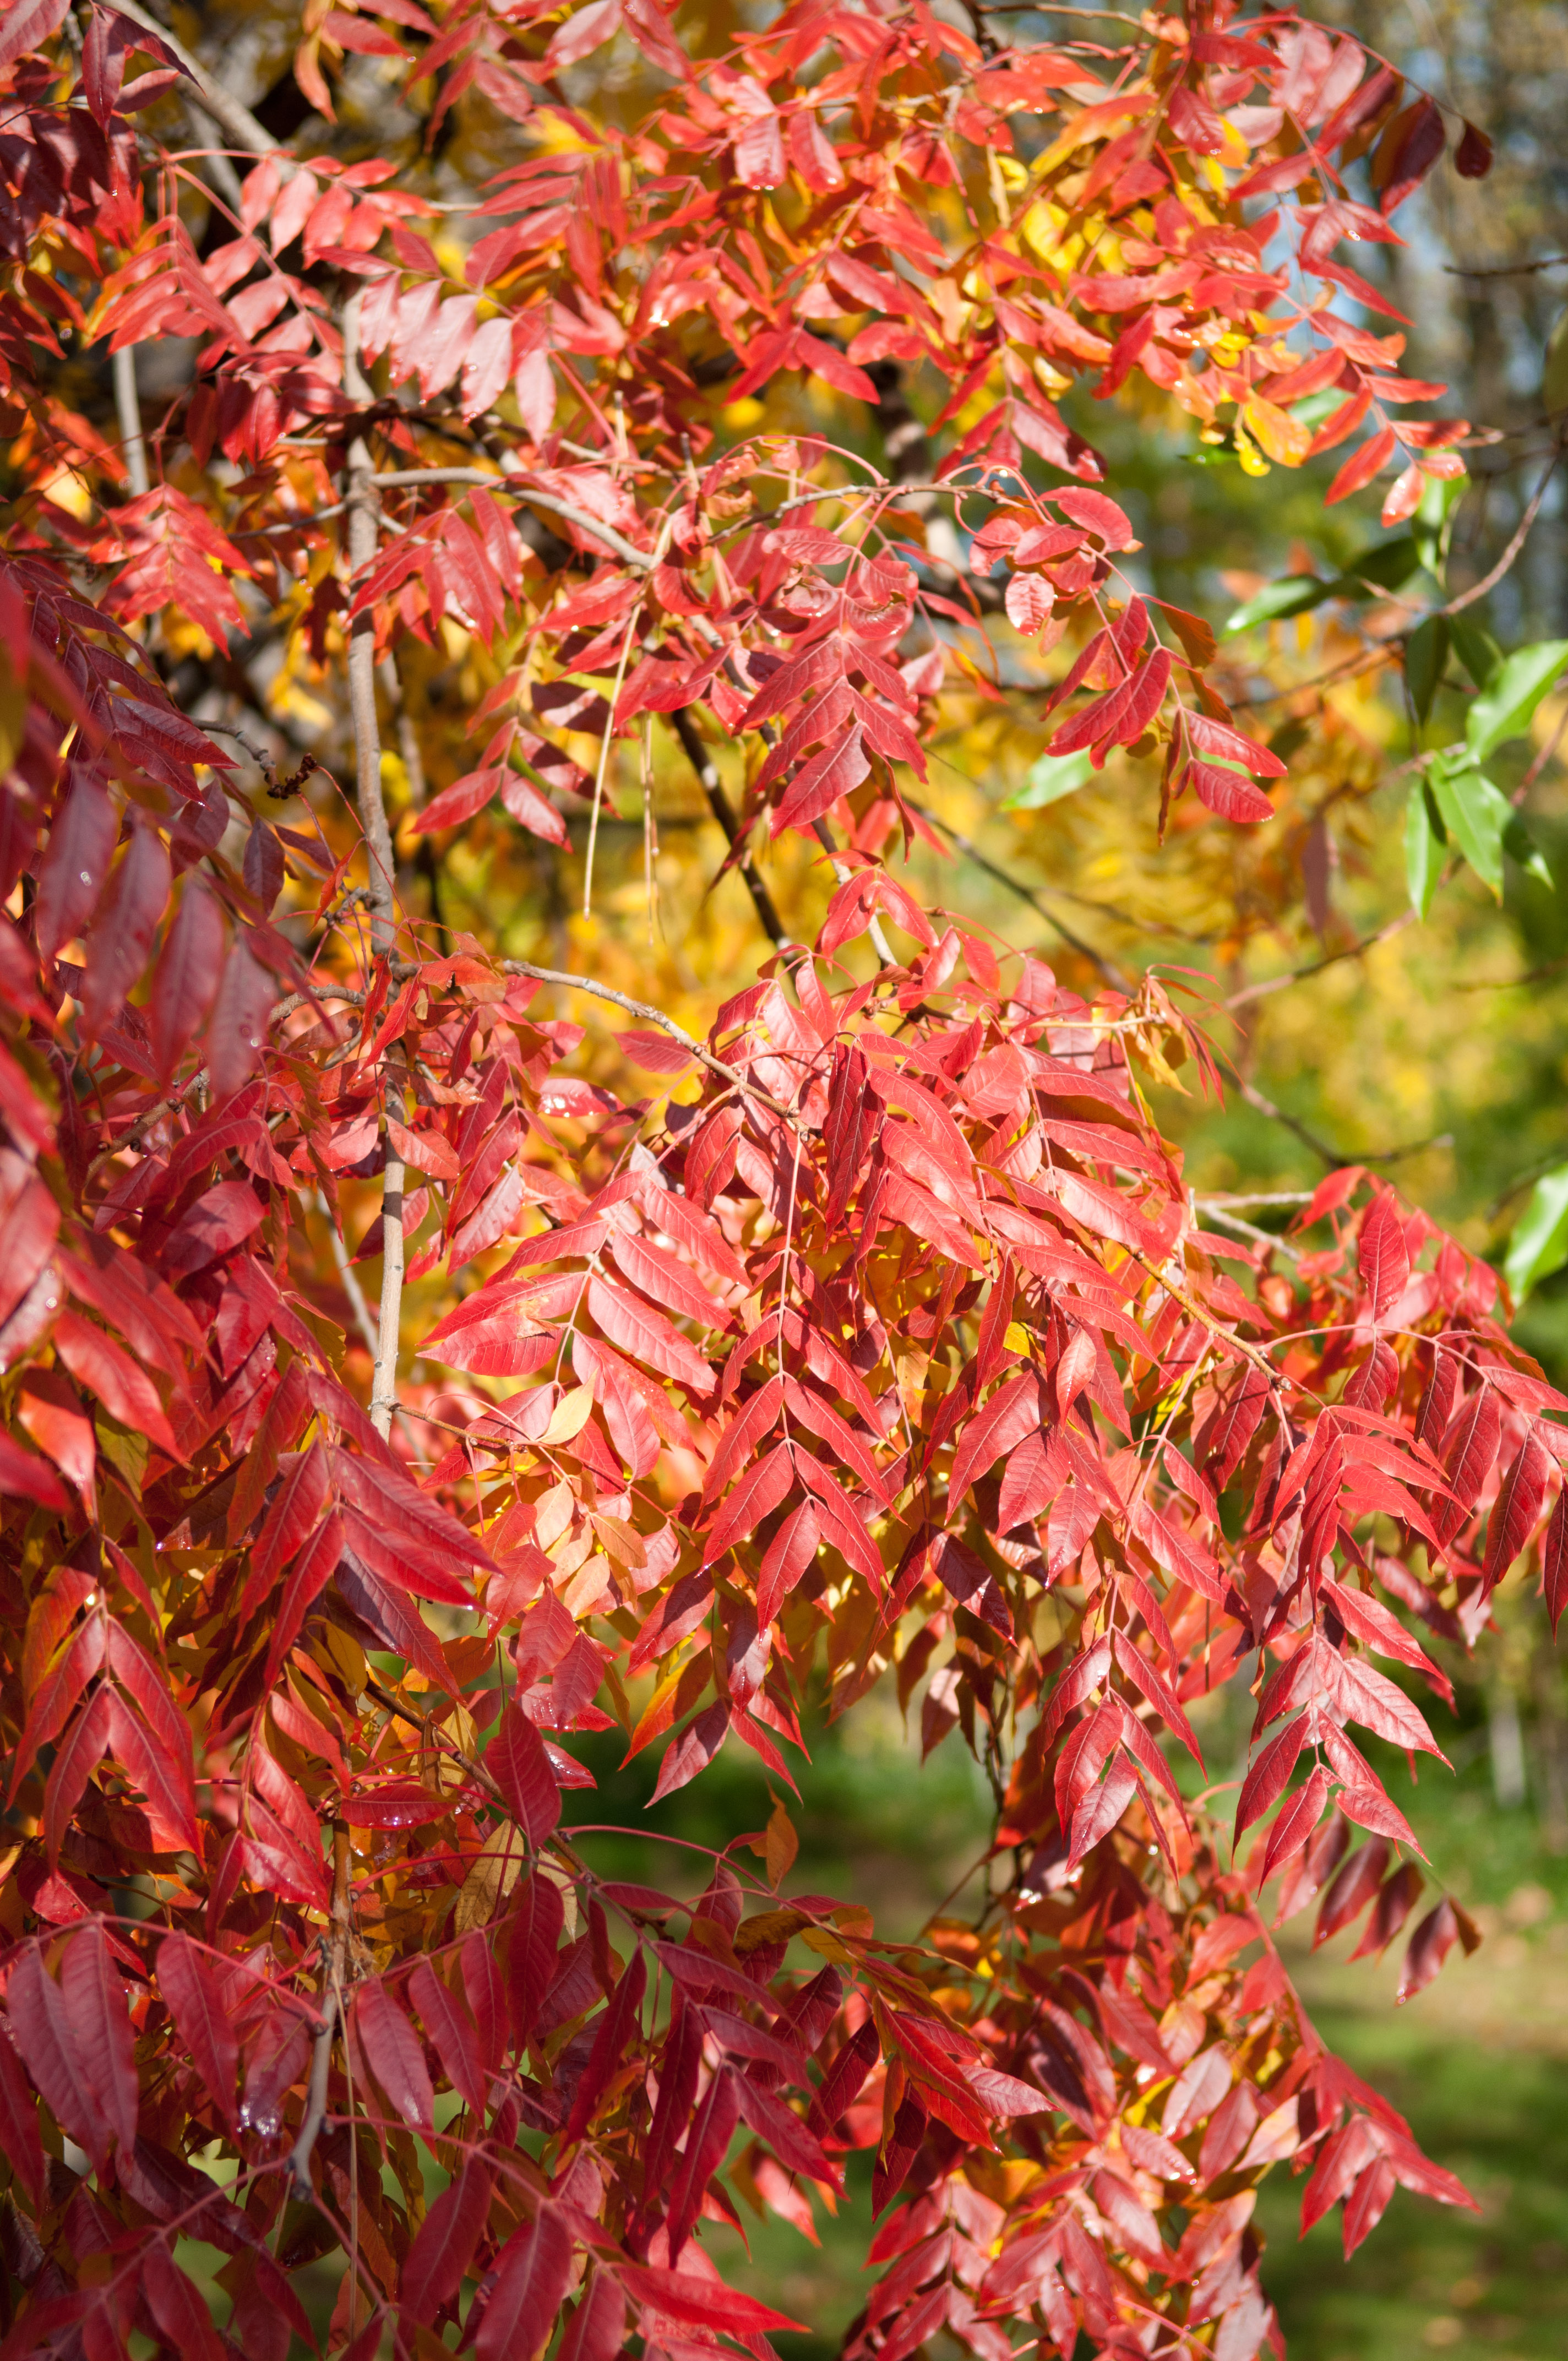 A bit of Fall color from the Genetic Test Center in Chico